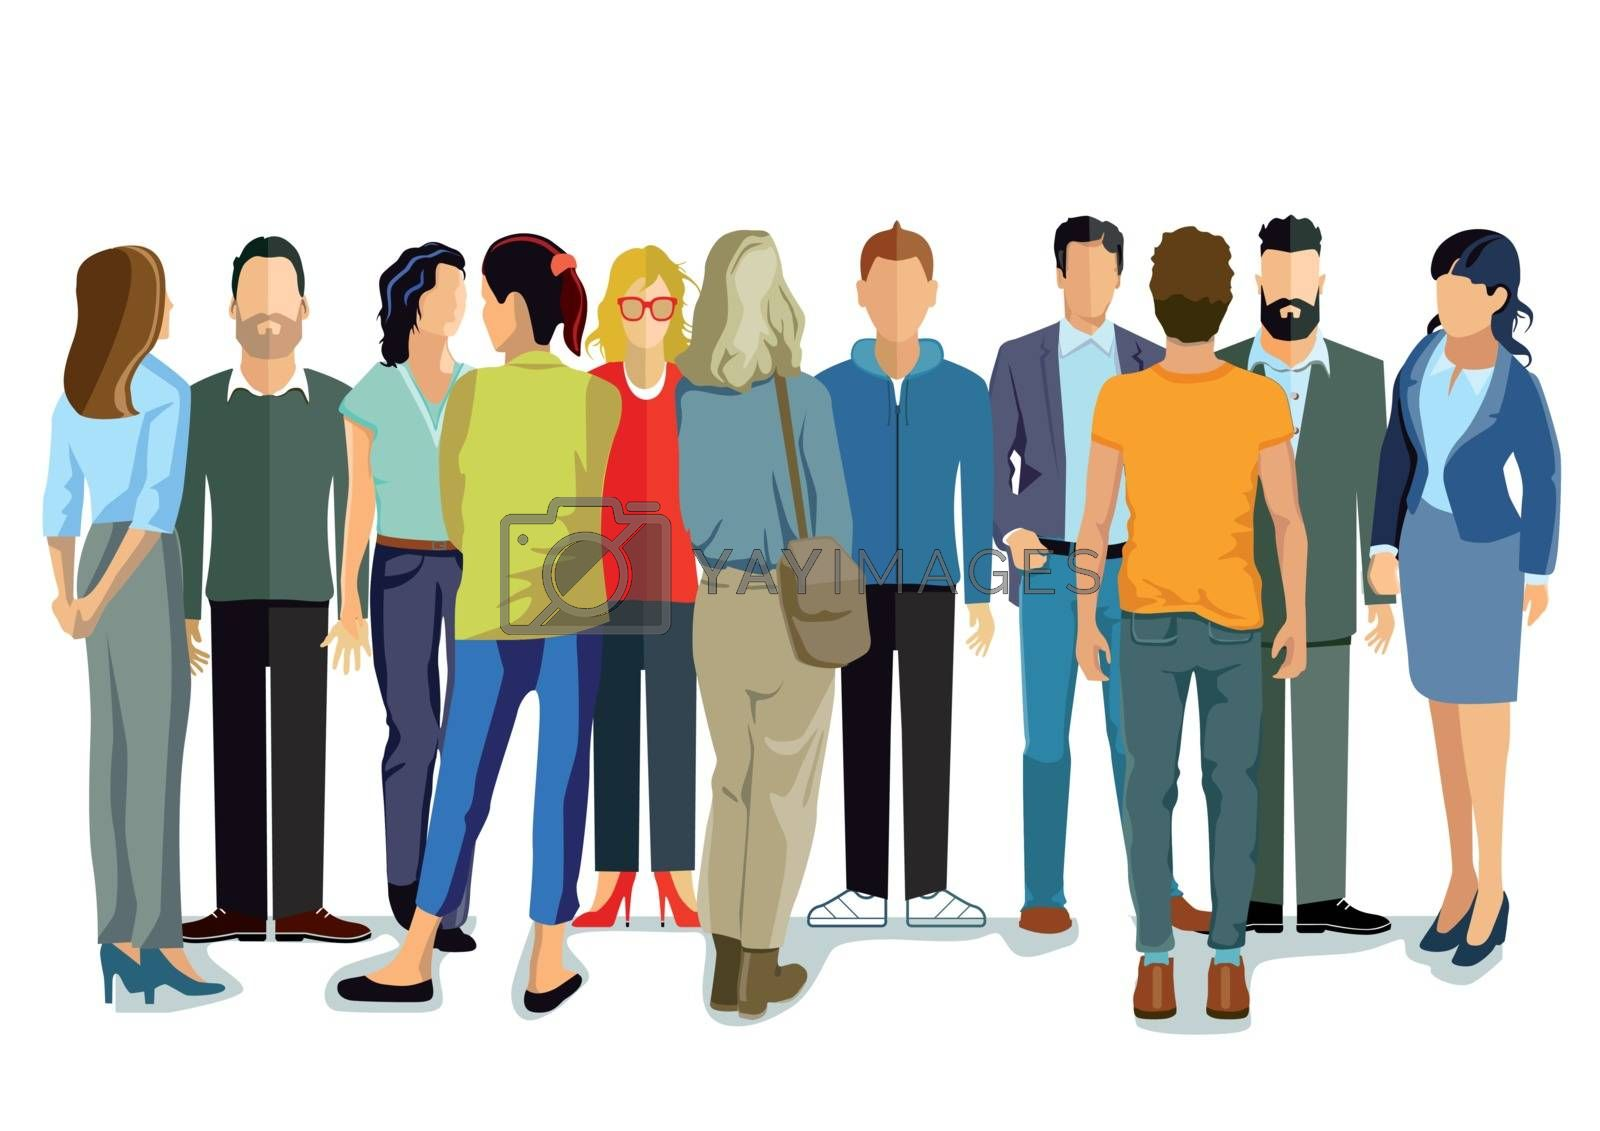 Person group of young people, illustration